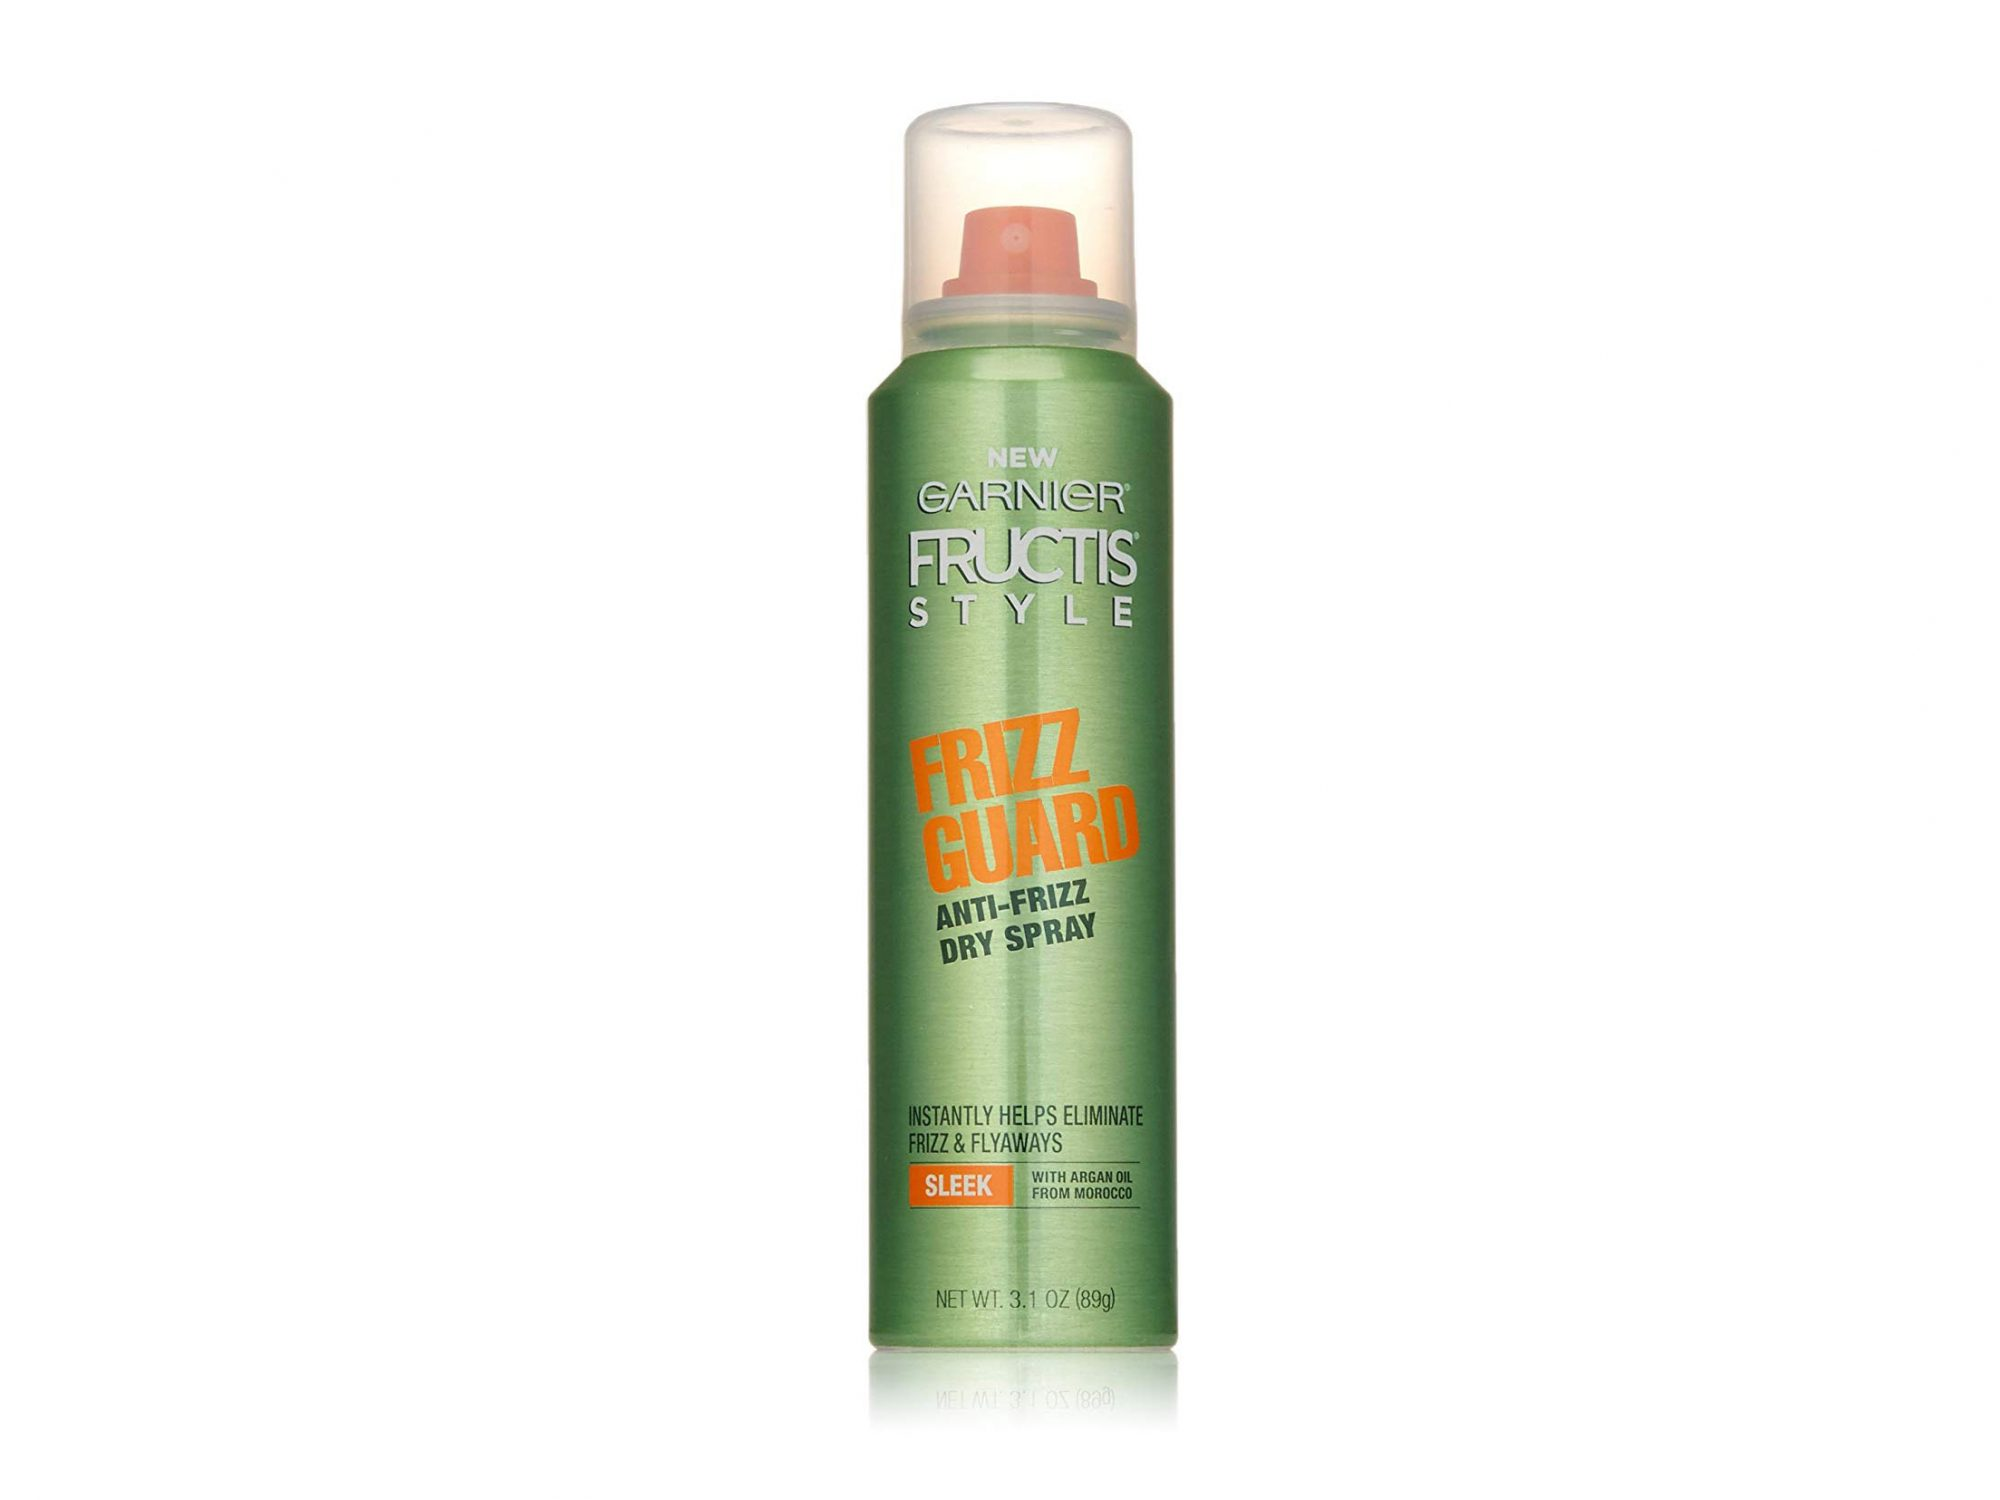 Garnier Hair Care Fructis Anti-Frizz Dry Spray